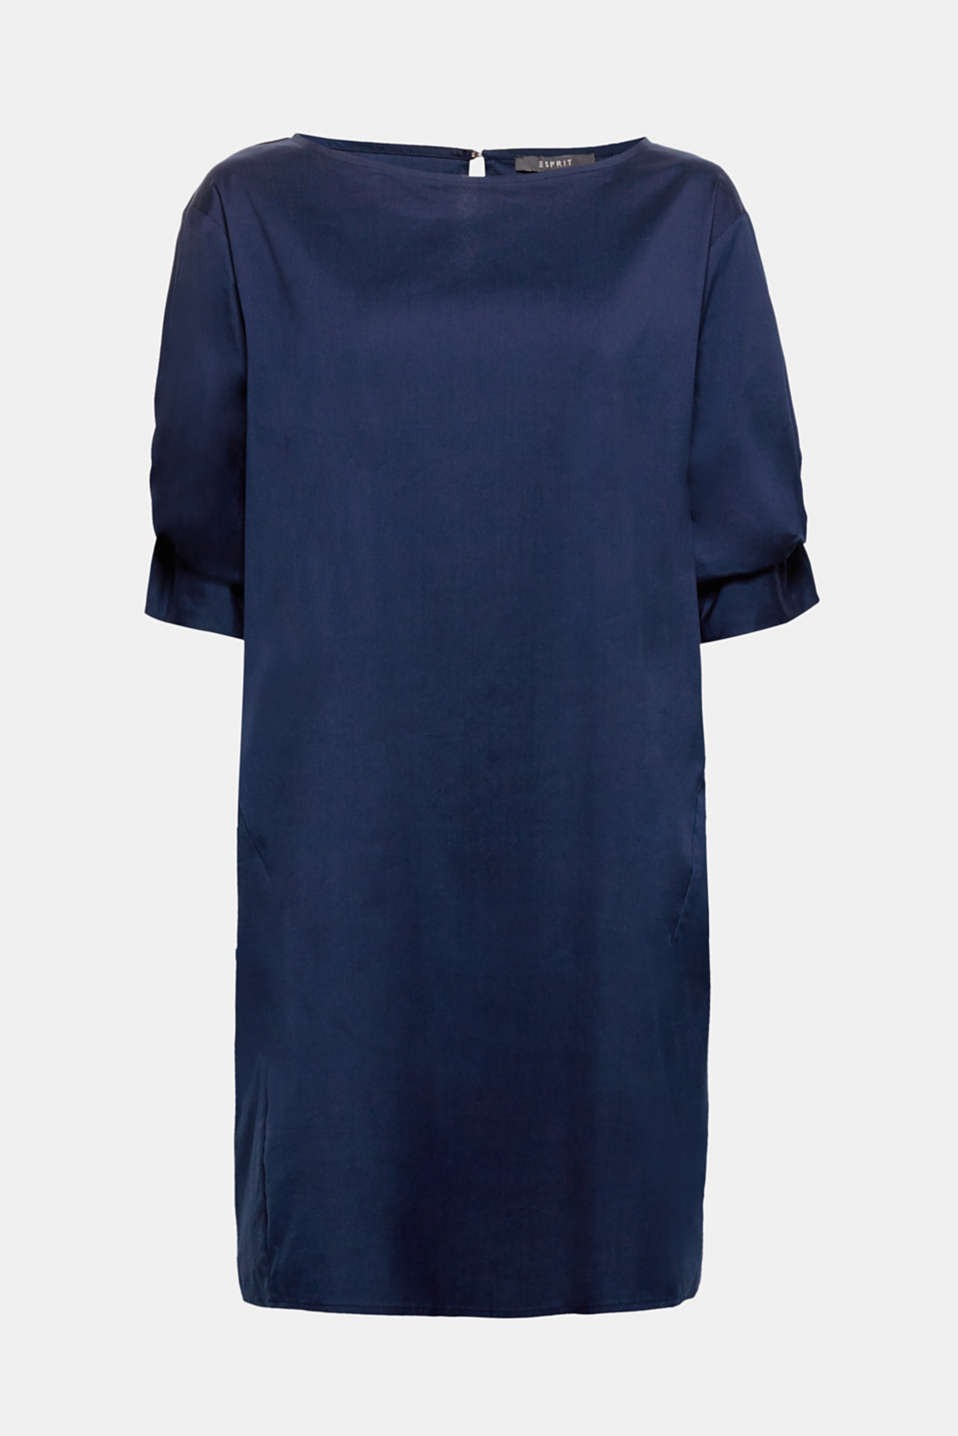 This loose-fitting dress made of a comfortable cotton blend with stretch for comfort and knot details on the sleeves is sure to become your new favourite dress.